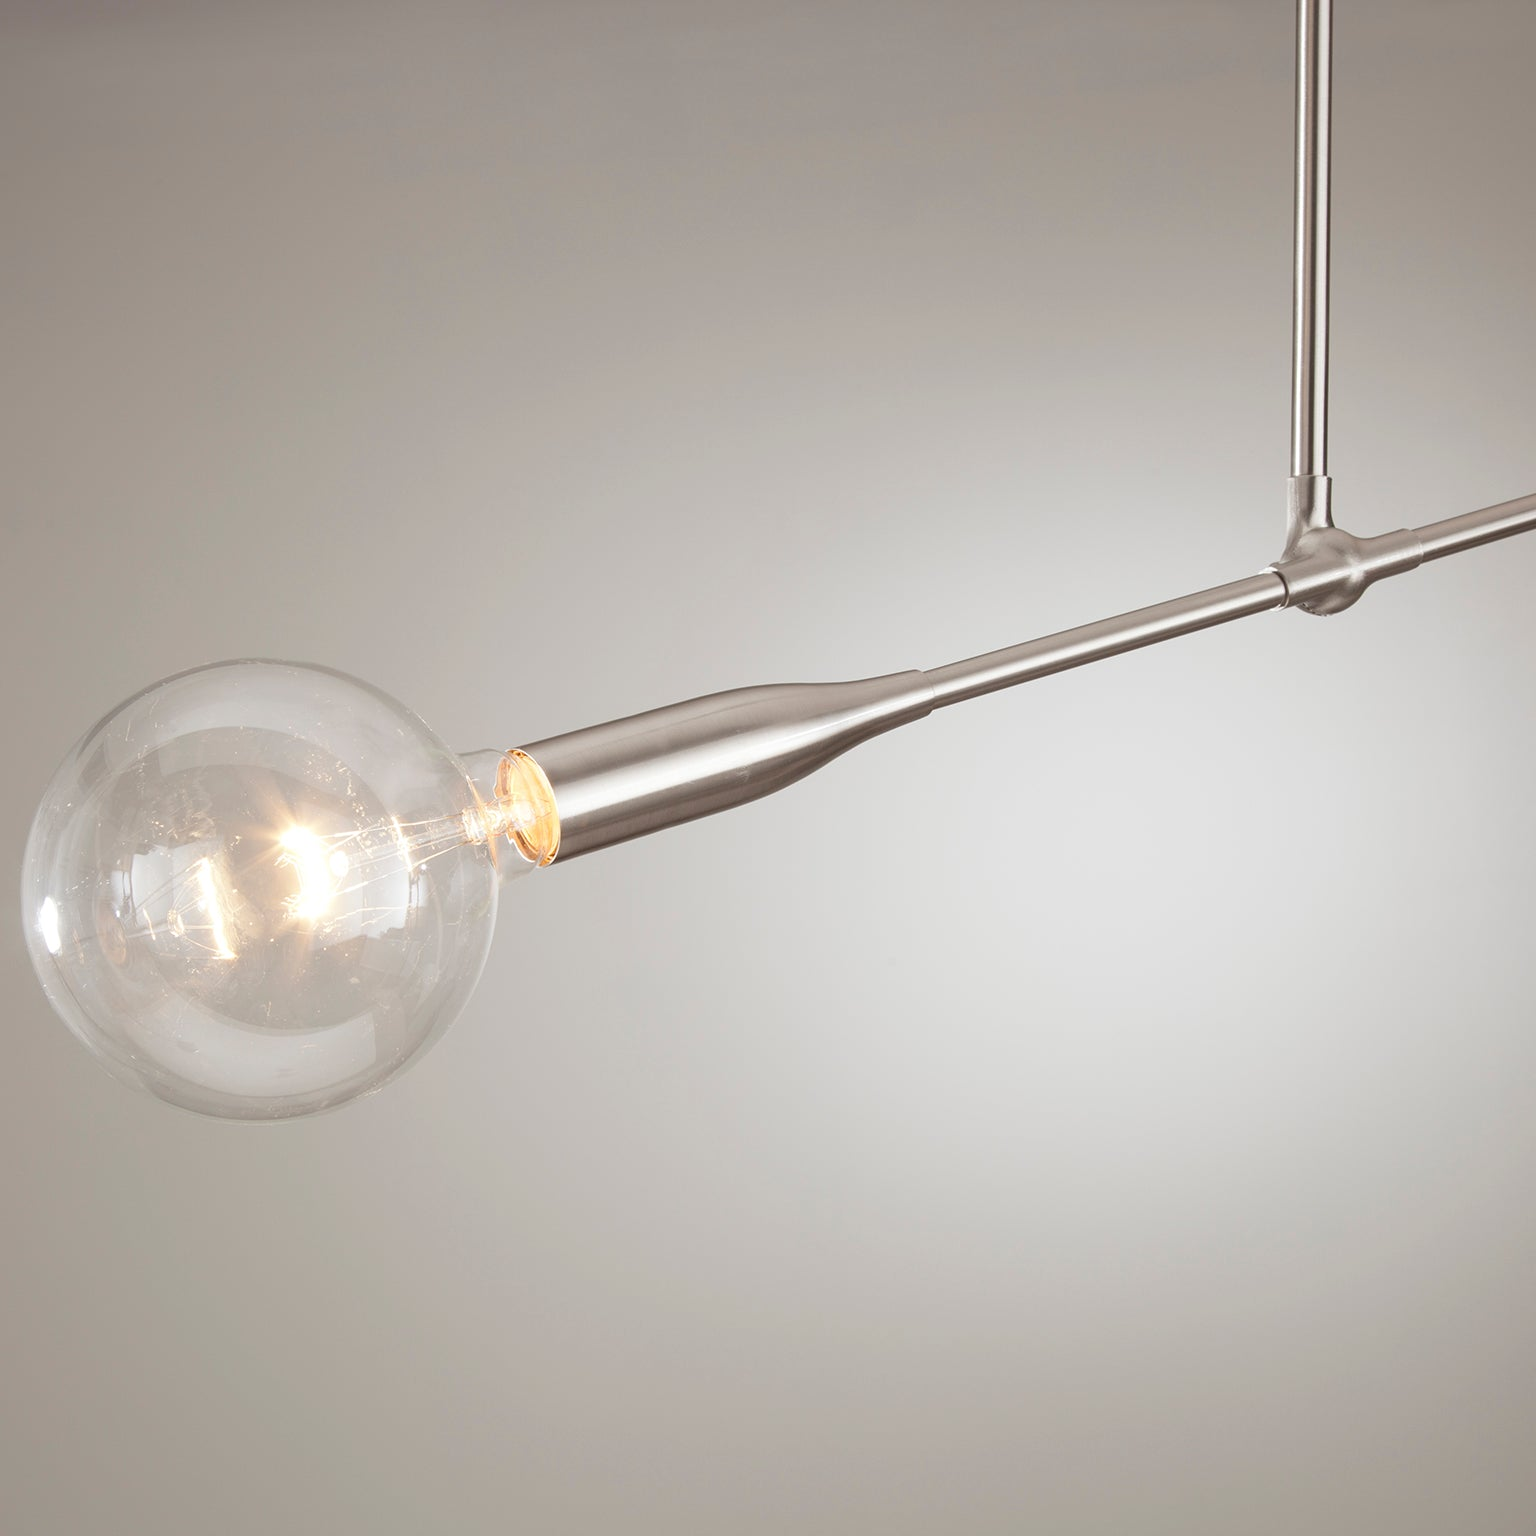 Sorenthia Light Brushed Nickel Globe Bulb Close Up by Studio DUNN